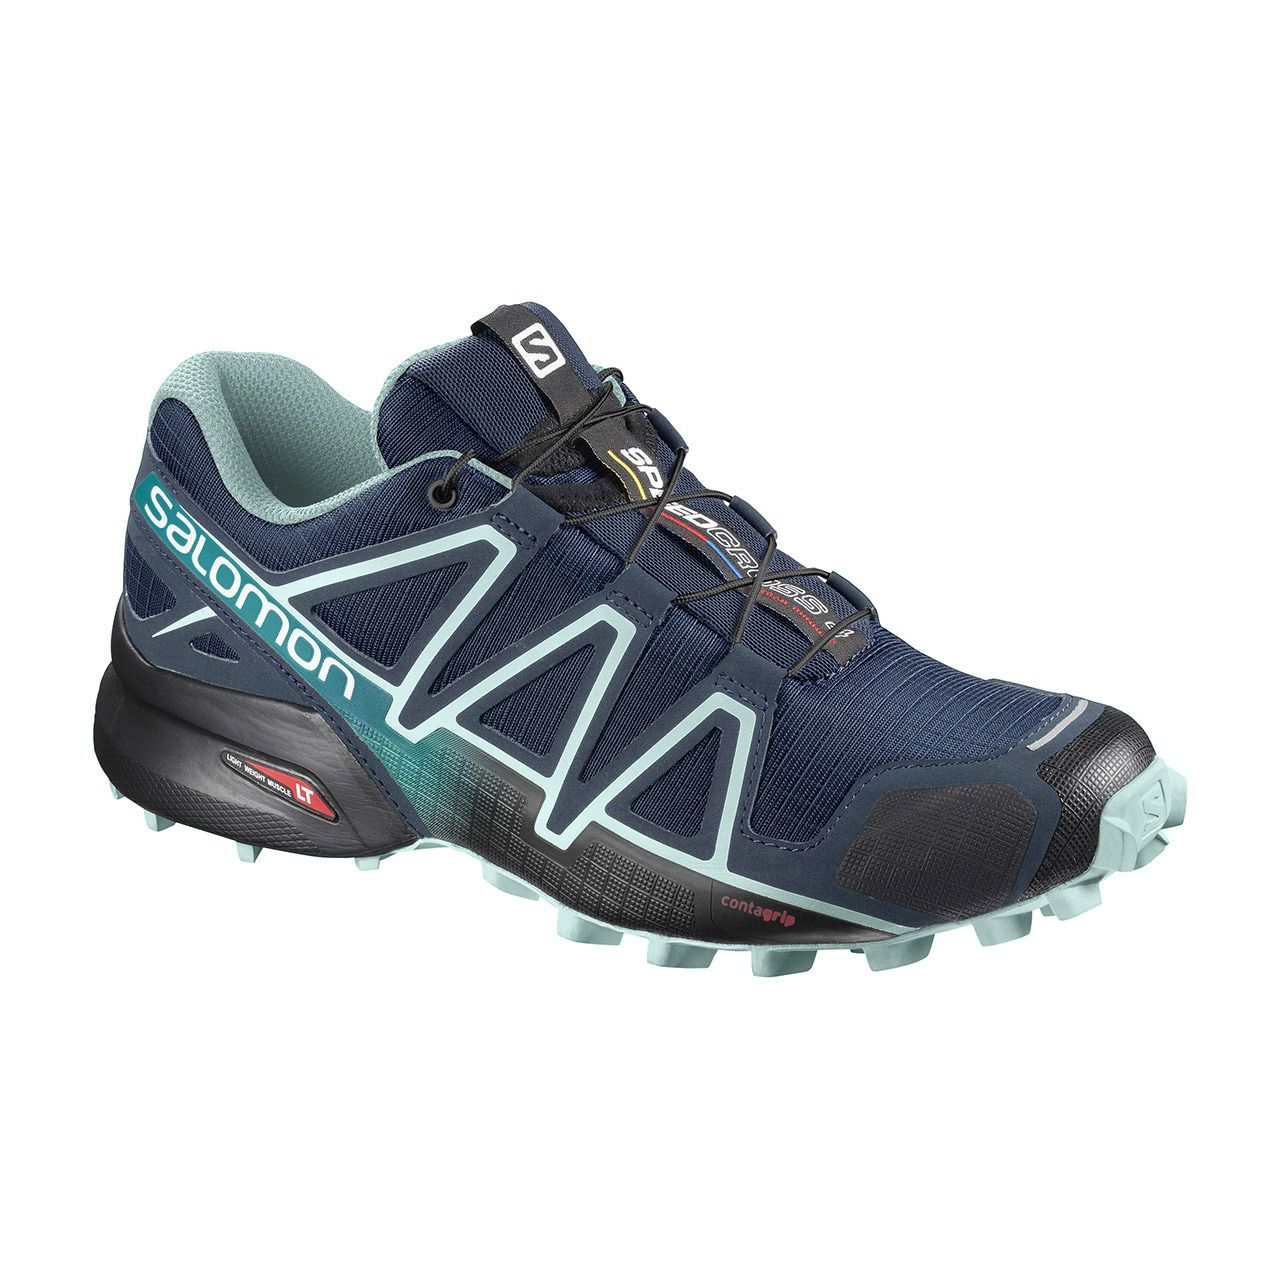 Tênis Salomon Speedcross 4 Fem - Azul